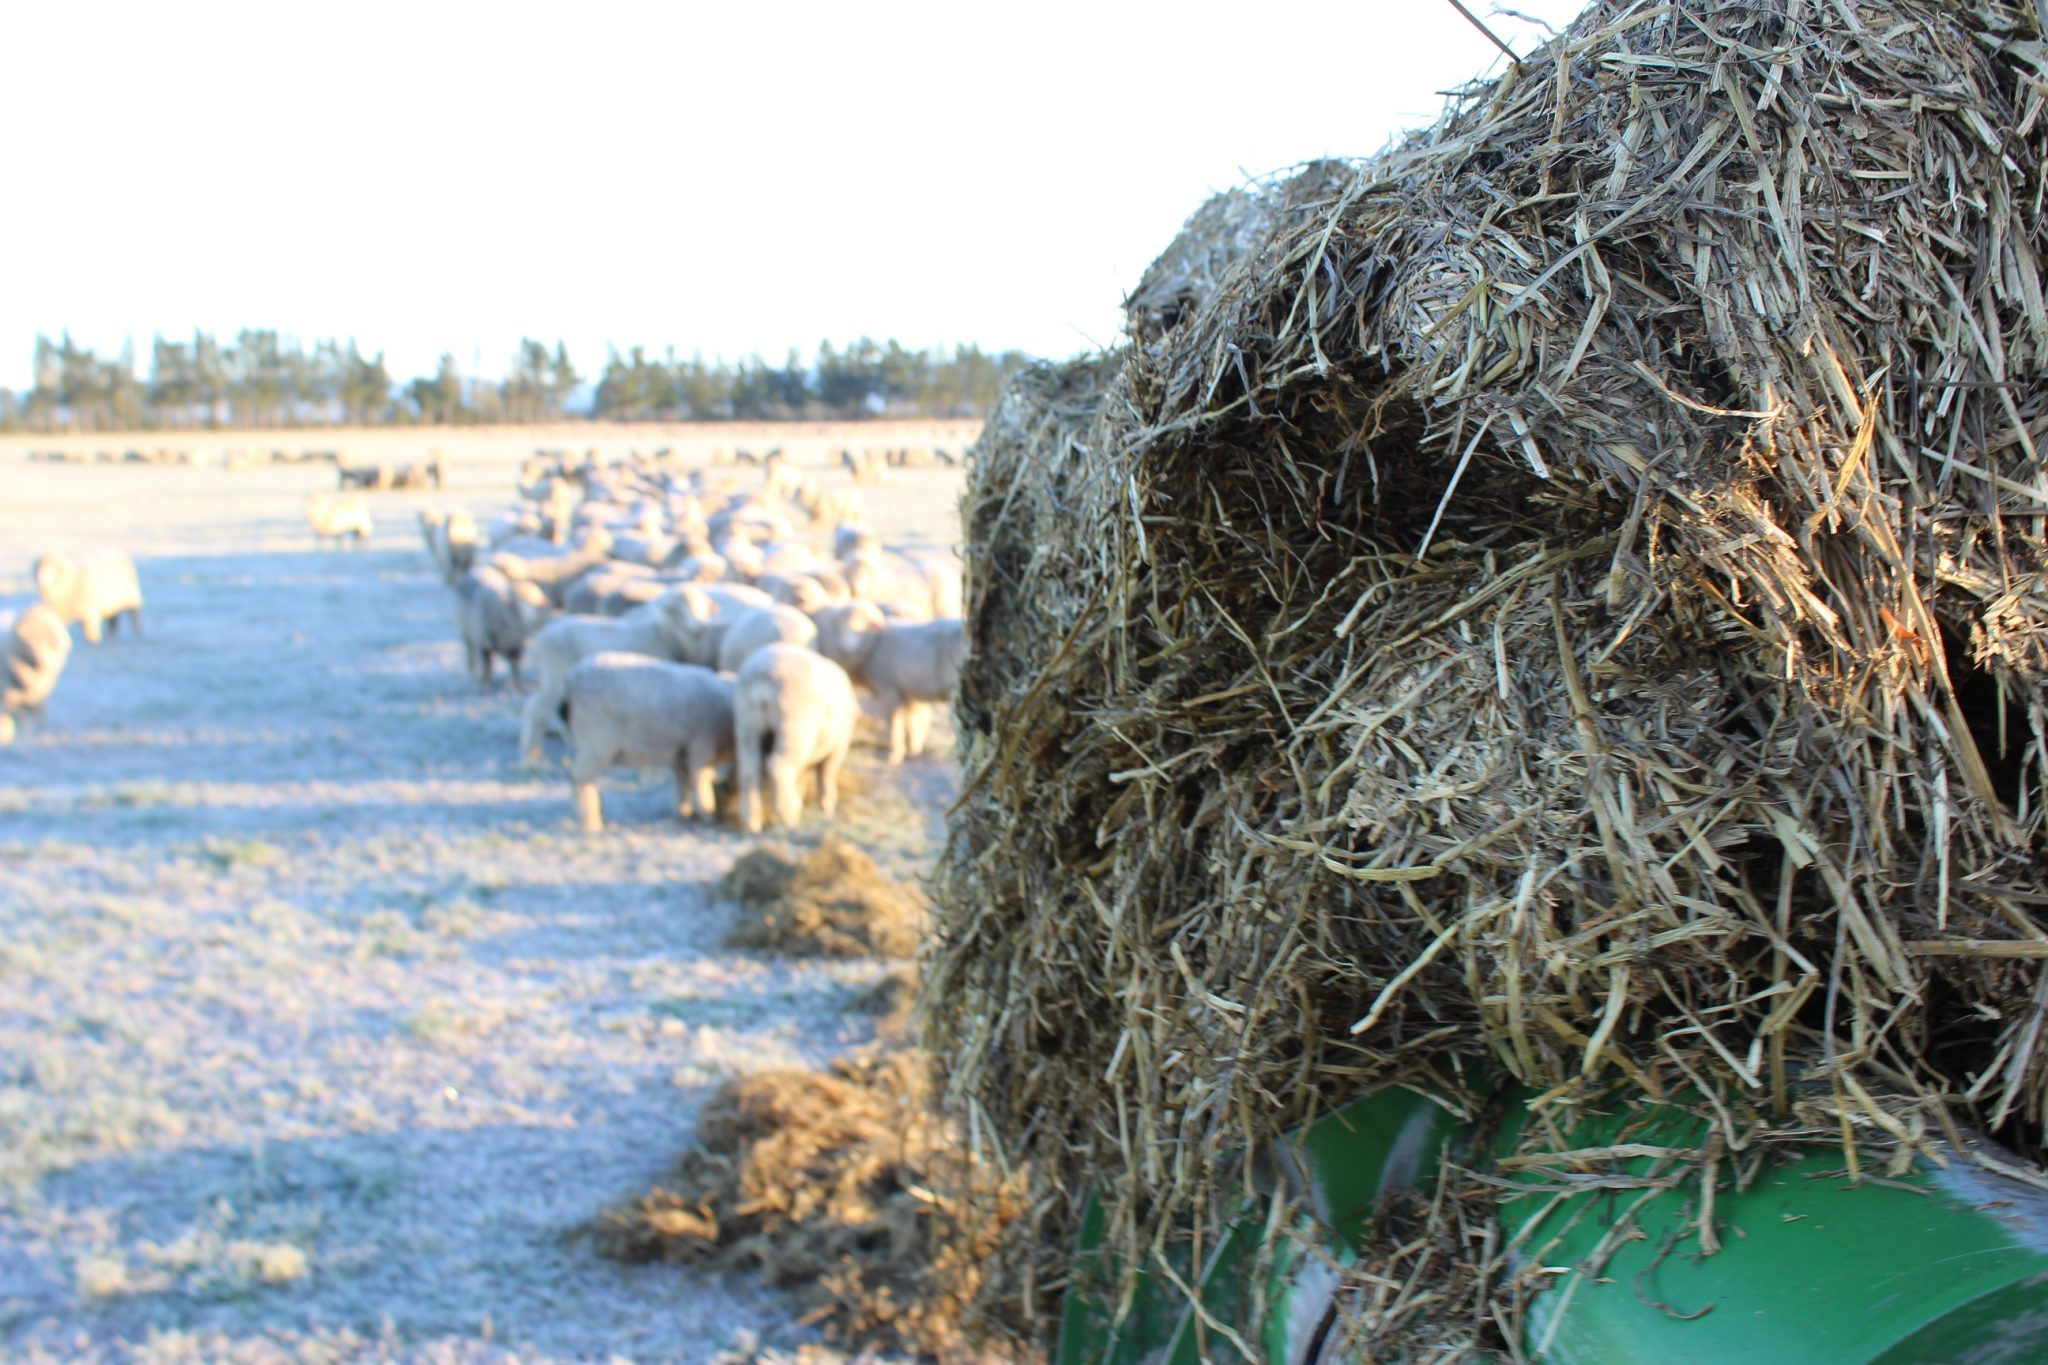 Feeding Lucerne Baleage to Merino sheep